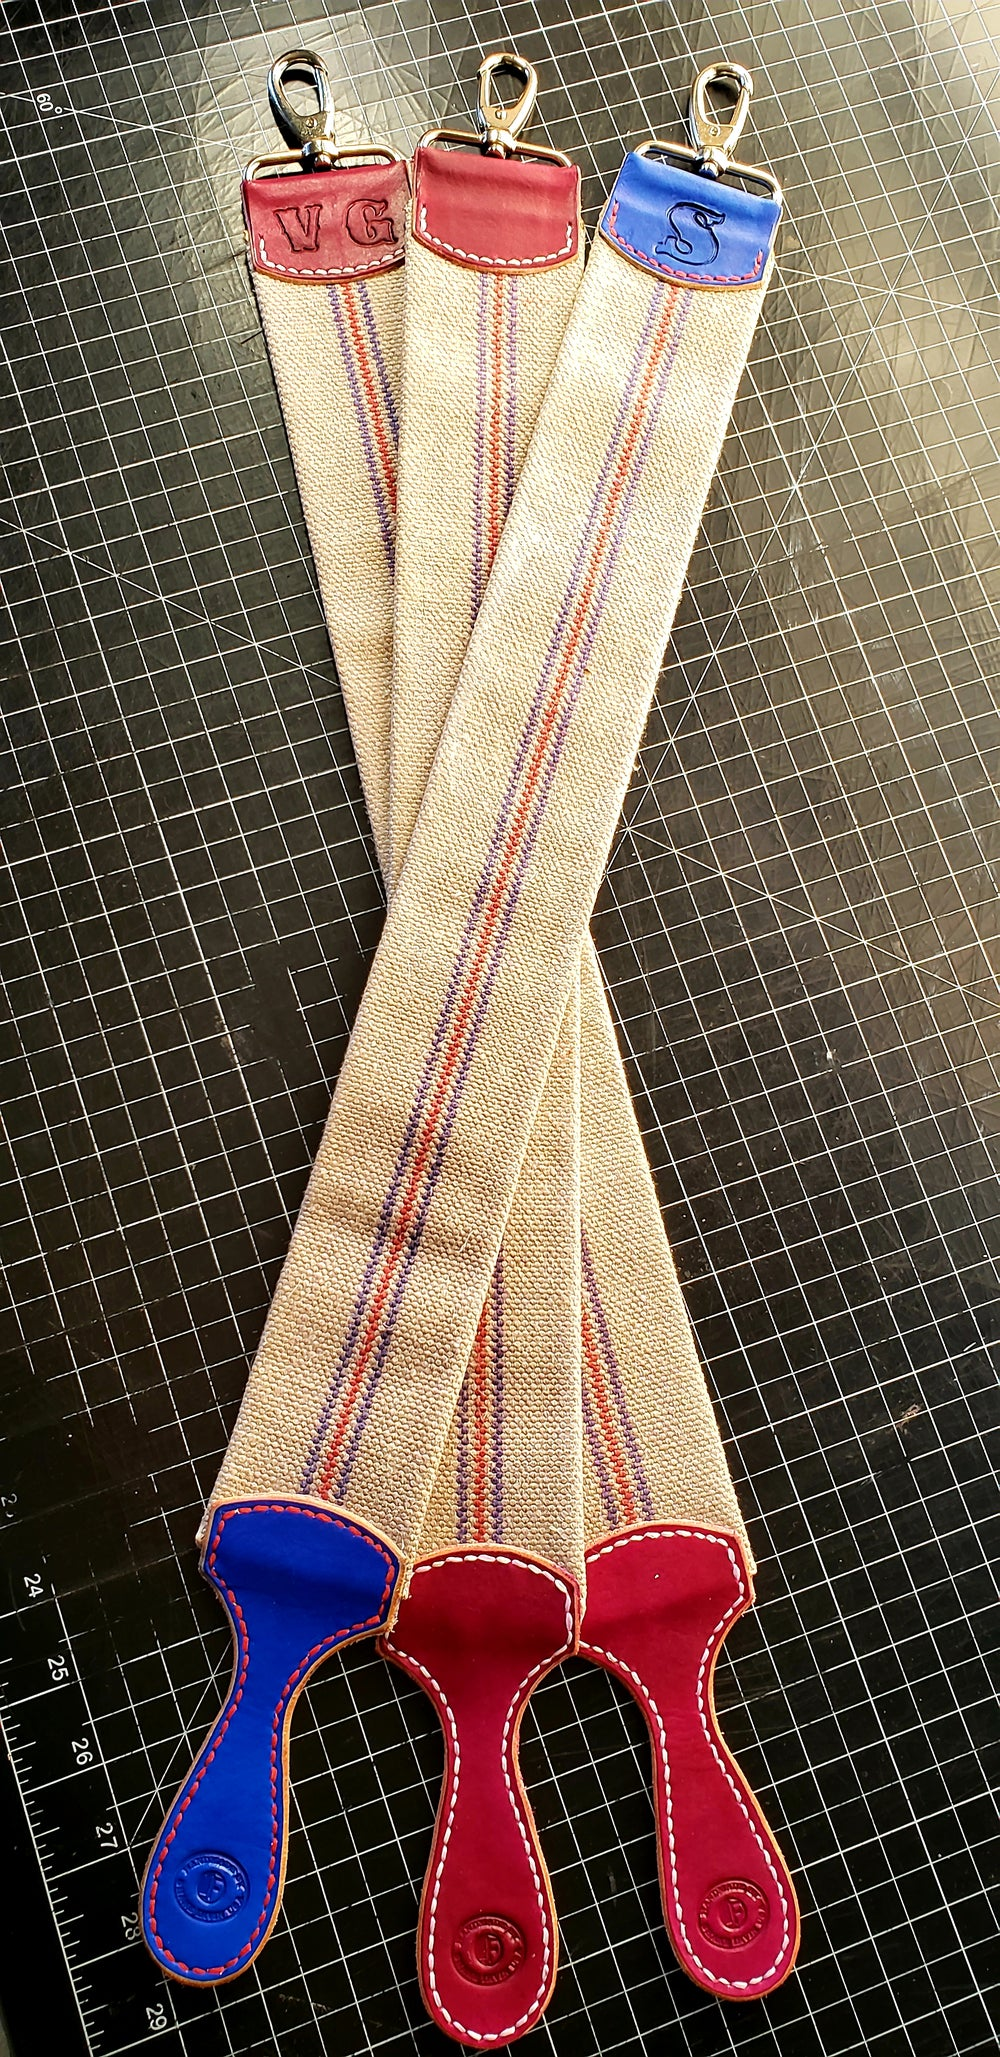 Image of Custom Vintage Linen Fire Hose Strop. For straight razors or knives.